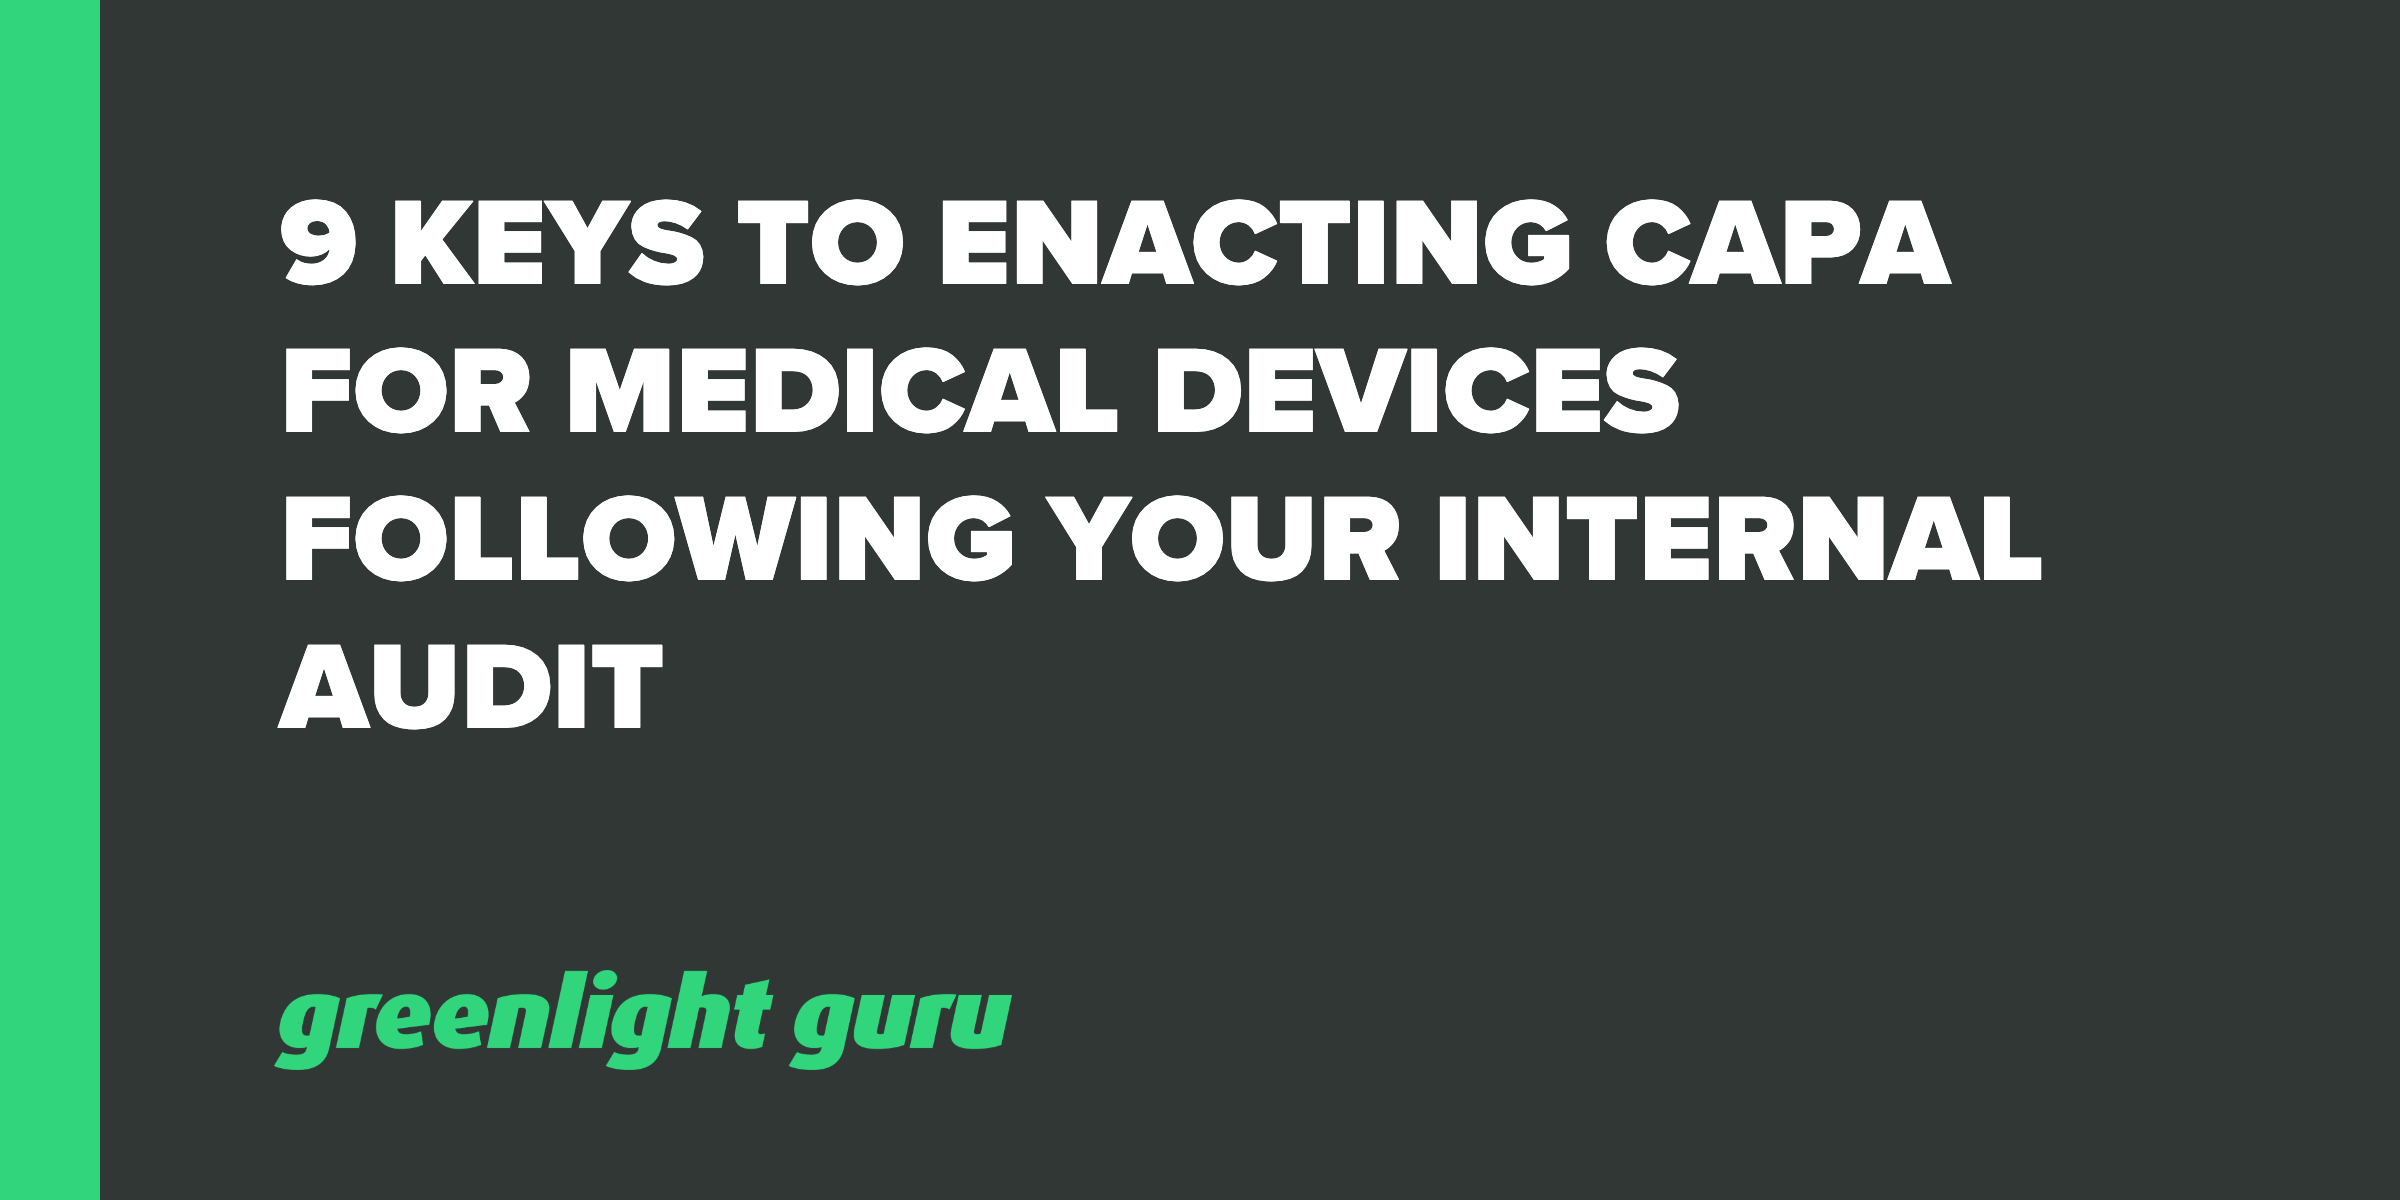 9 Keys to Enacting CAPA for Medical Devices Following Your Internal Audit - Featured Image